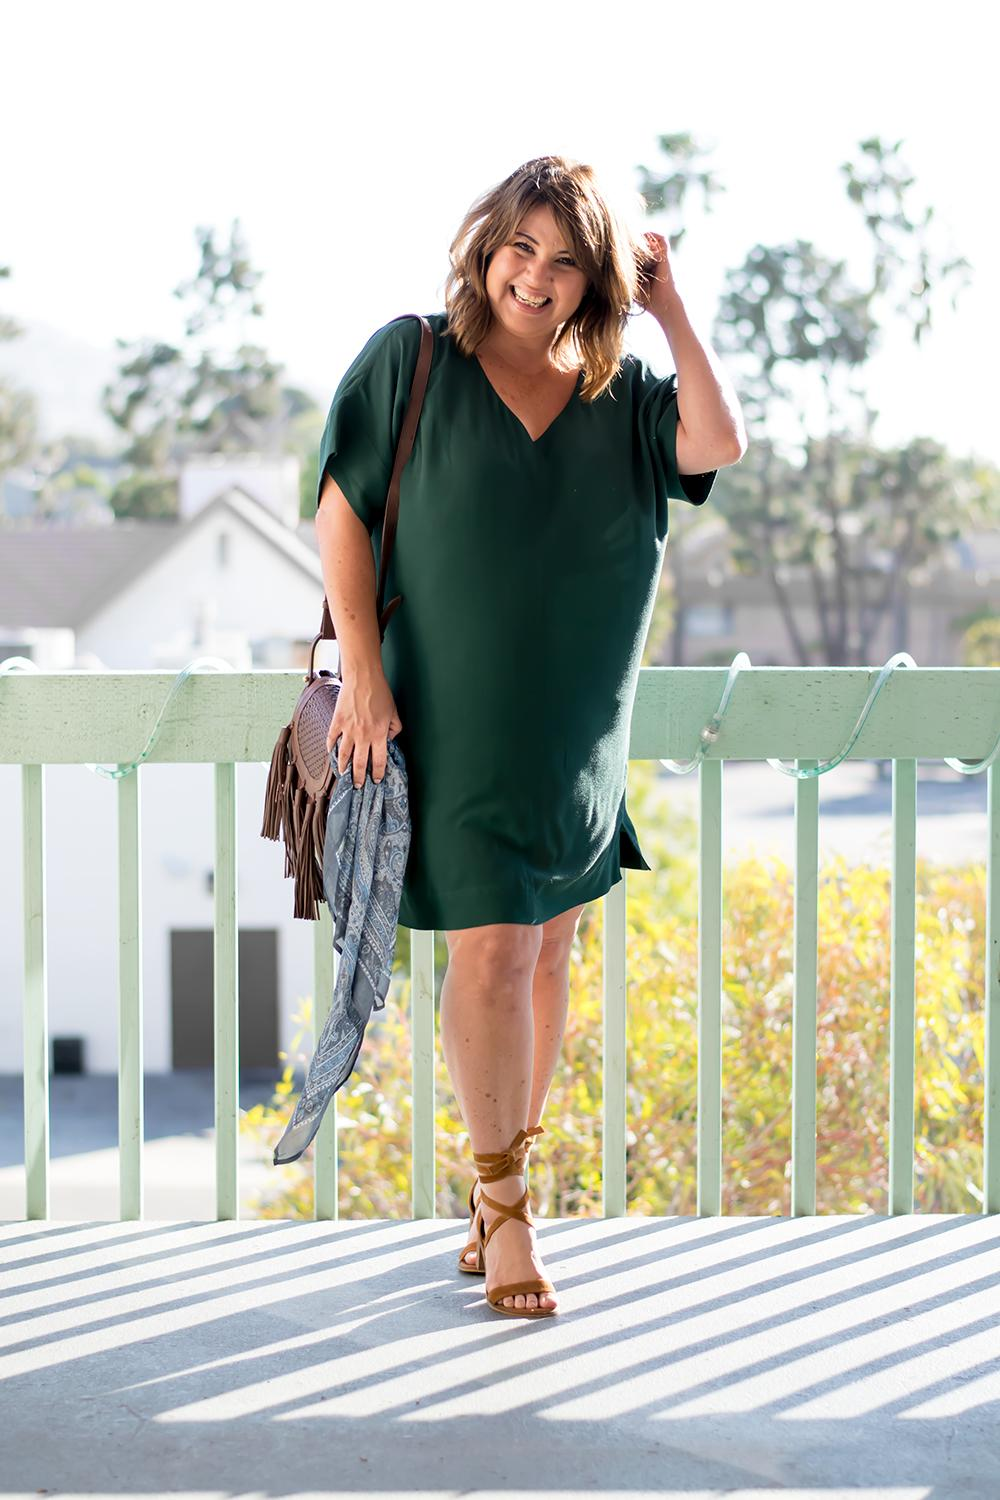 How-to-Look-Perfectly-Put-Together-in-a-5-Minute-Outfit-Barefoot-in-LA-Fashion-Blog-Style-Ideas-Outfits-DSC_0874